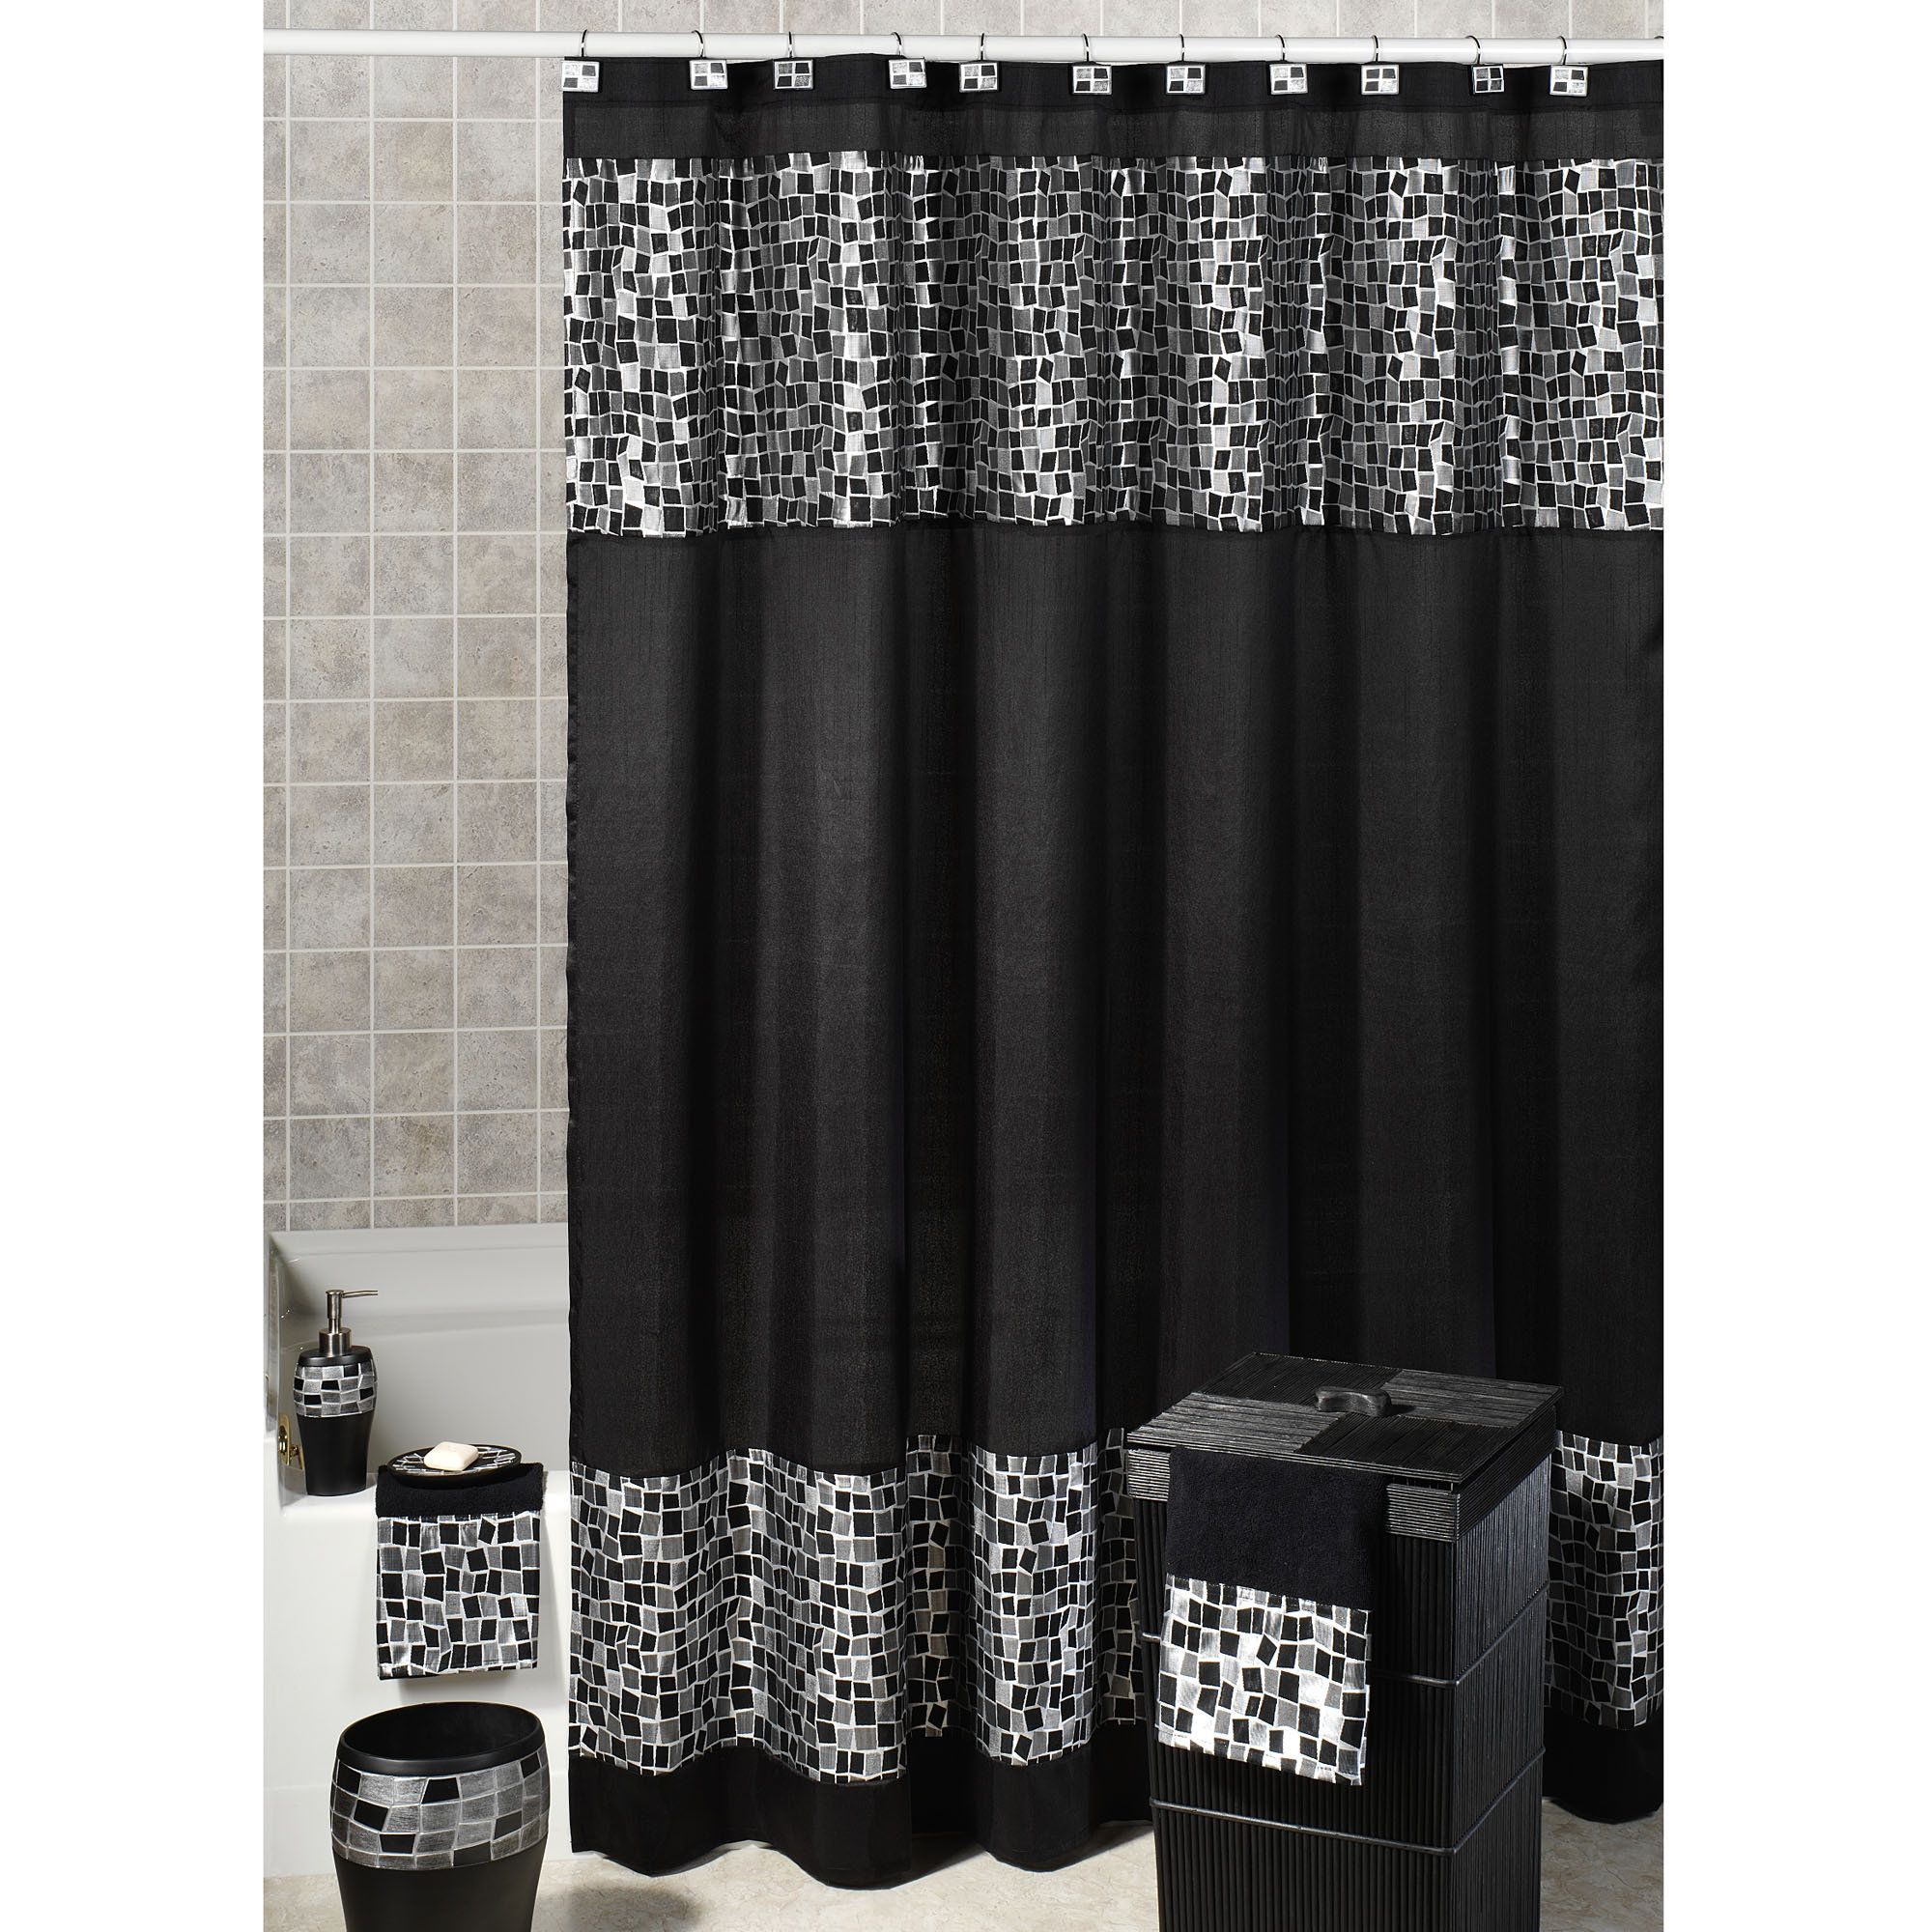 Awesome black mosaic shower curtain design ideas cute - Target bathroom shower curtain sets ...